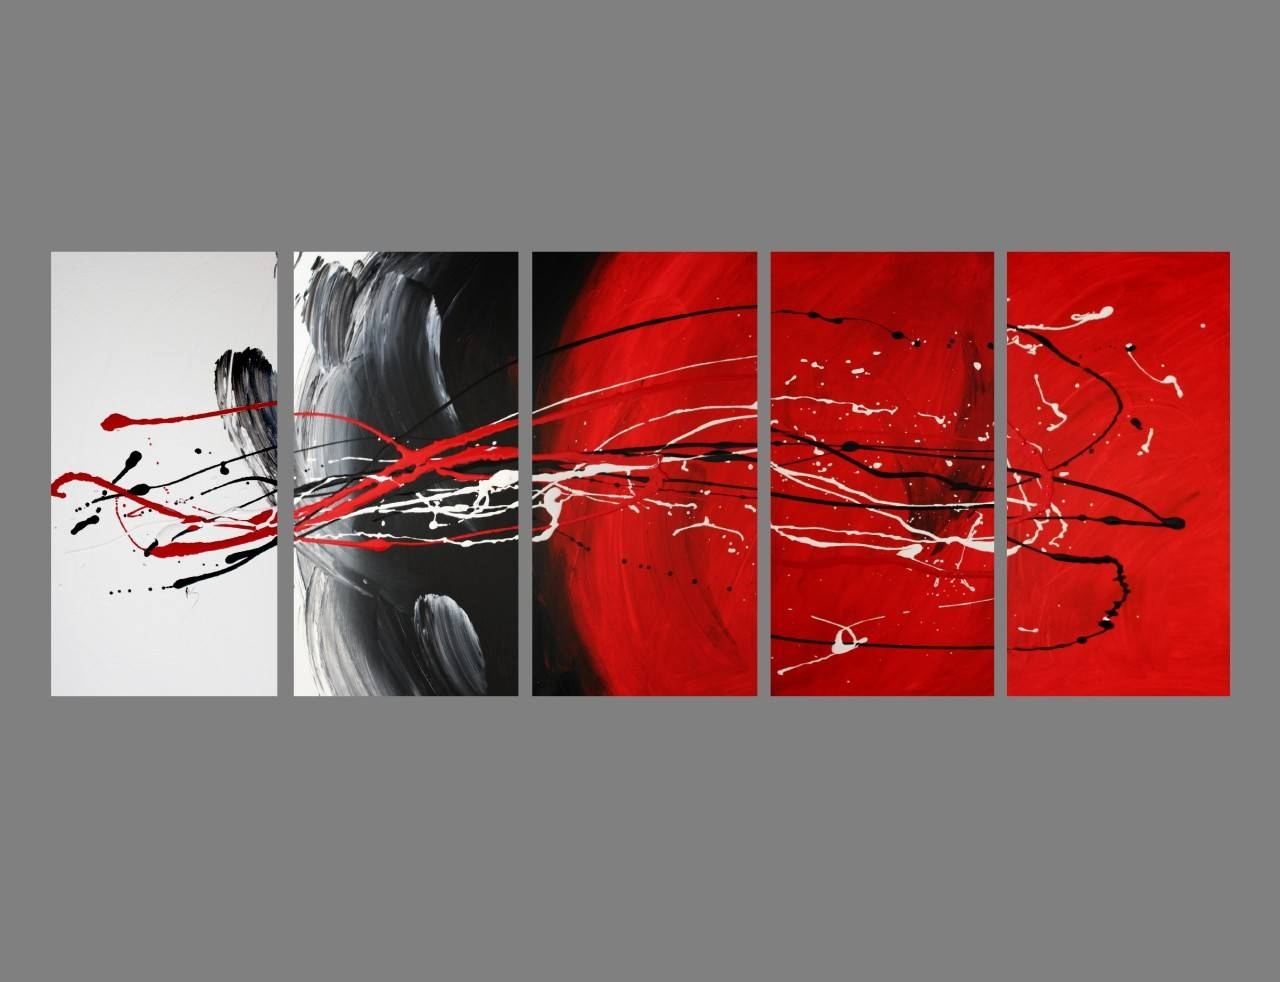 Abstract Canvas Painting Red Black White Modern Wall Art Artwork Regarding Most Recent Black And White Wall Art With Red (View 2 of 25)